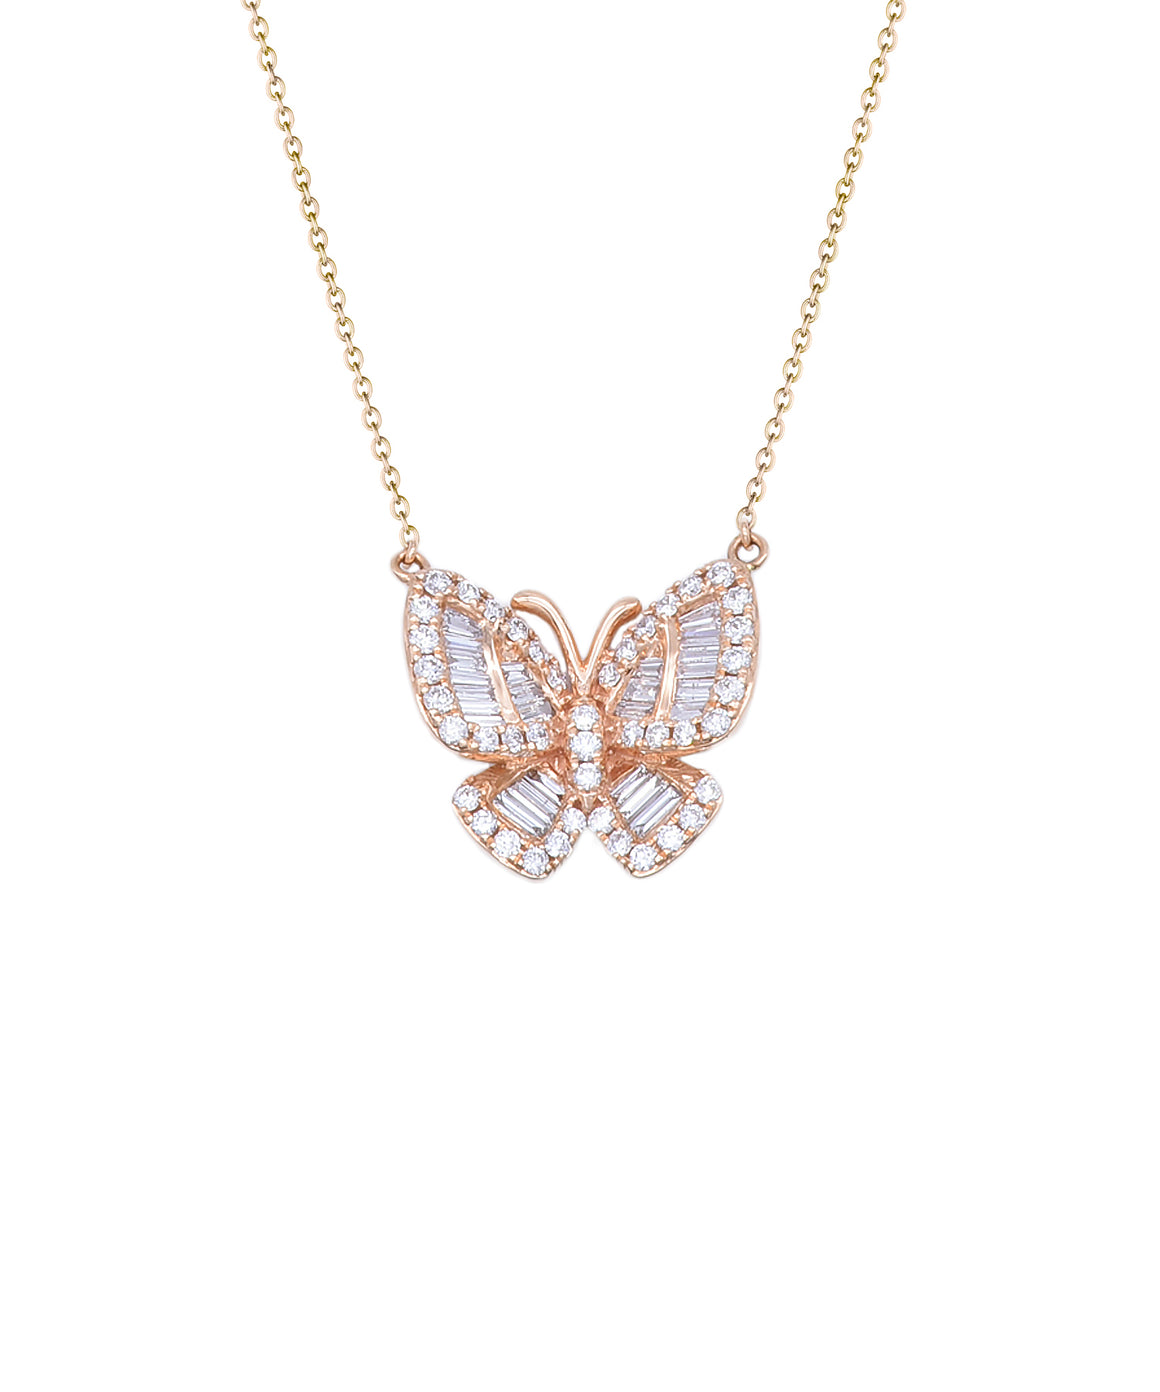 "The lovely butterfly is set with baguette and round diamonds totaling .85 carat. 18k rose gold adds a warm glow. The wingspan is 3/4"". The pendant hangs from and 18"" adjustable chain."